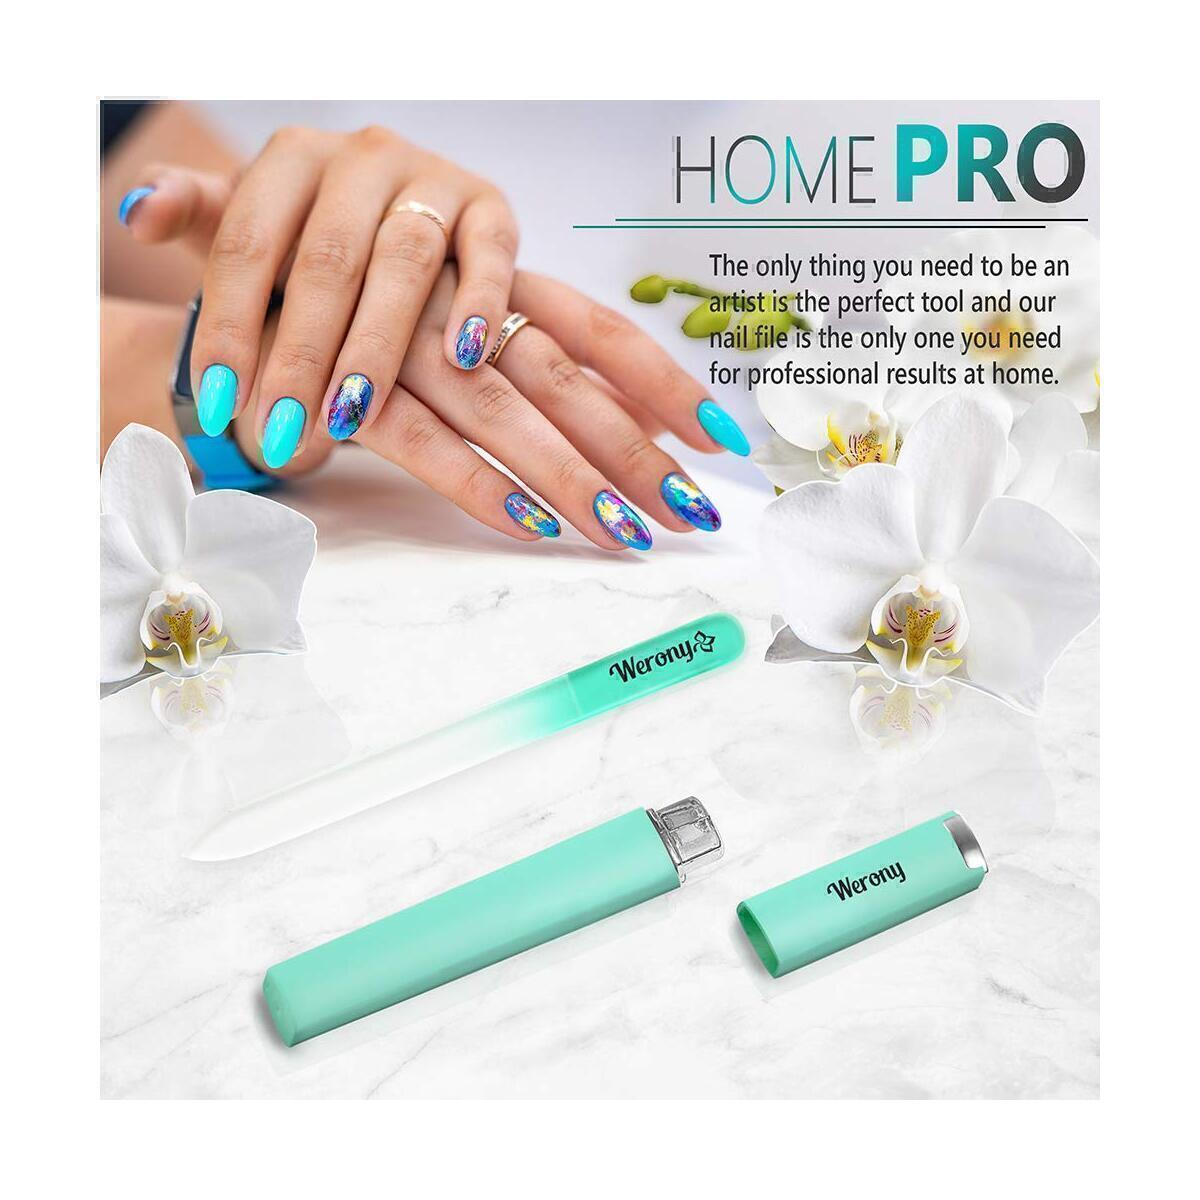 Nail File - Glass Nail File with Case - NEW COLOR - Premium Fingernail Files for Professional Manicure Nail Care - Crystal Nail File - Nail Files for Natural Nails